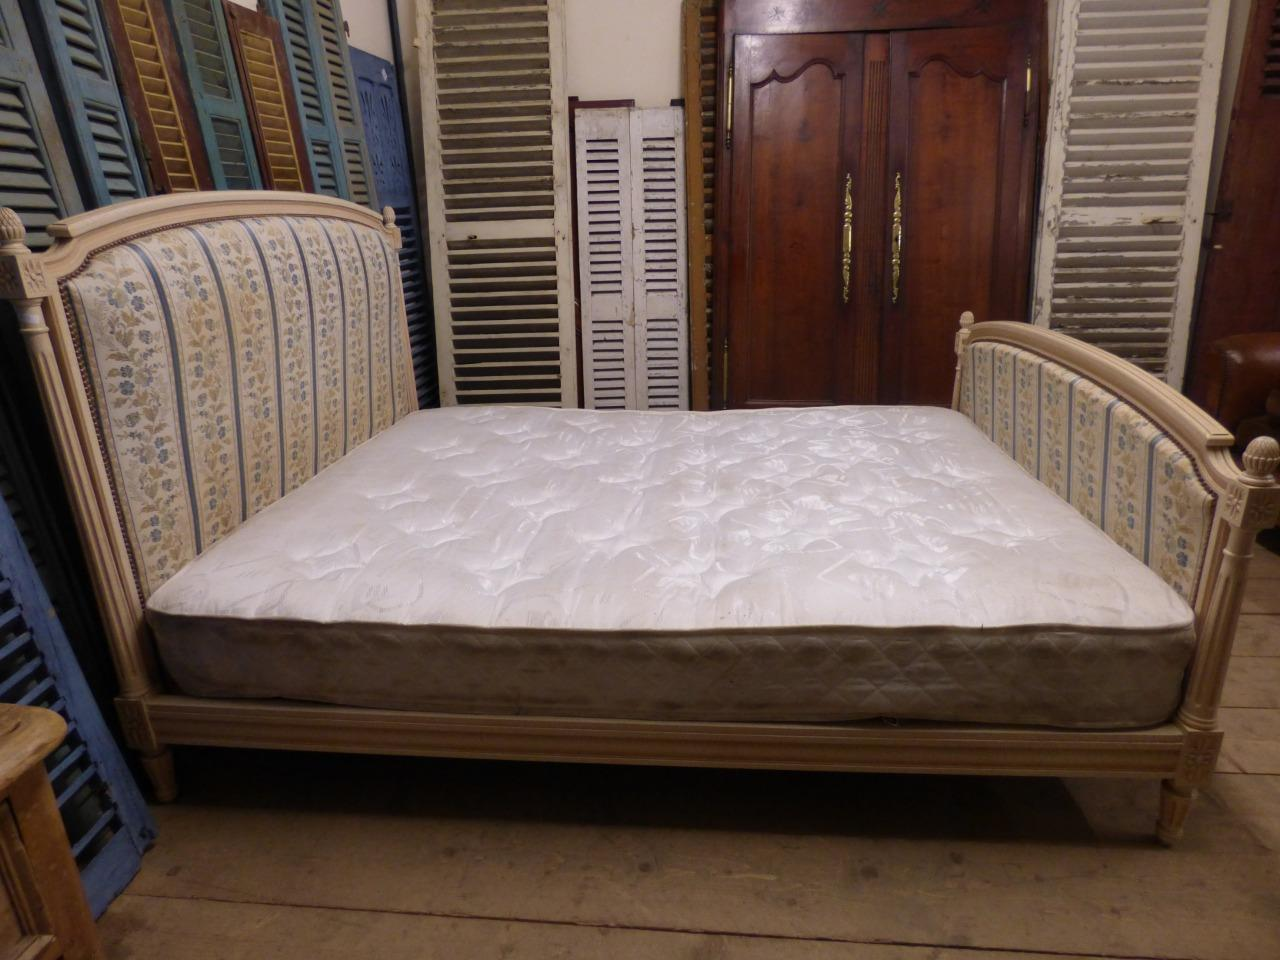 King Size Vintage.Vintage King Size French Bed G33